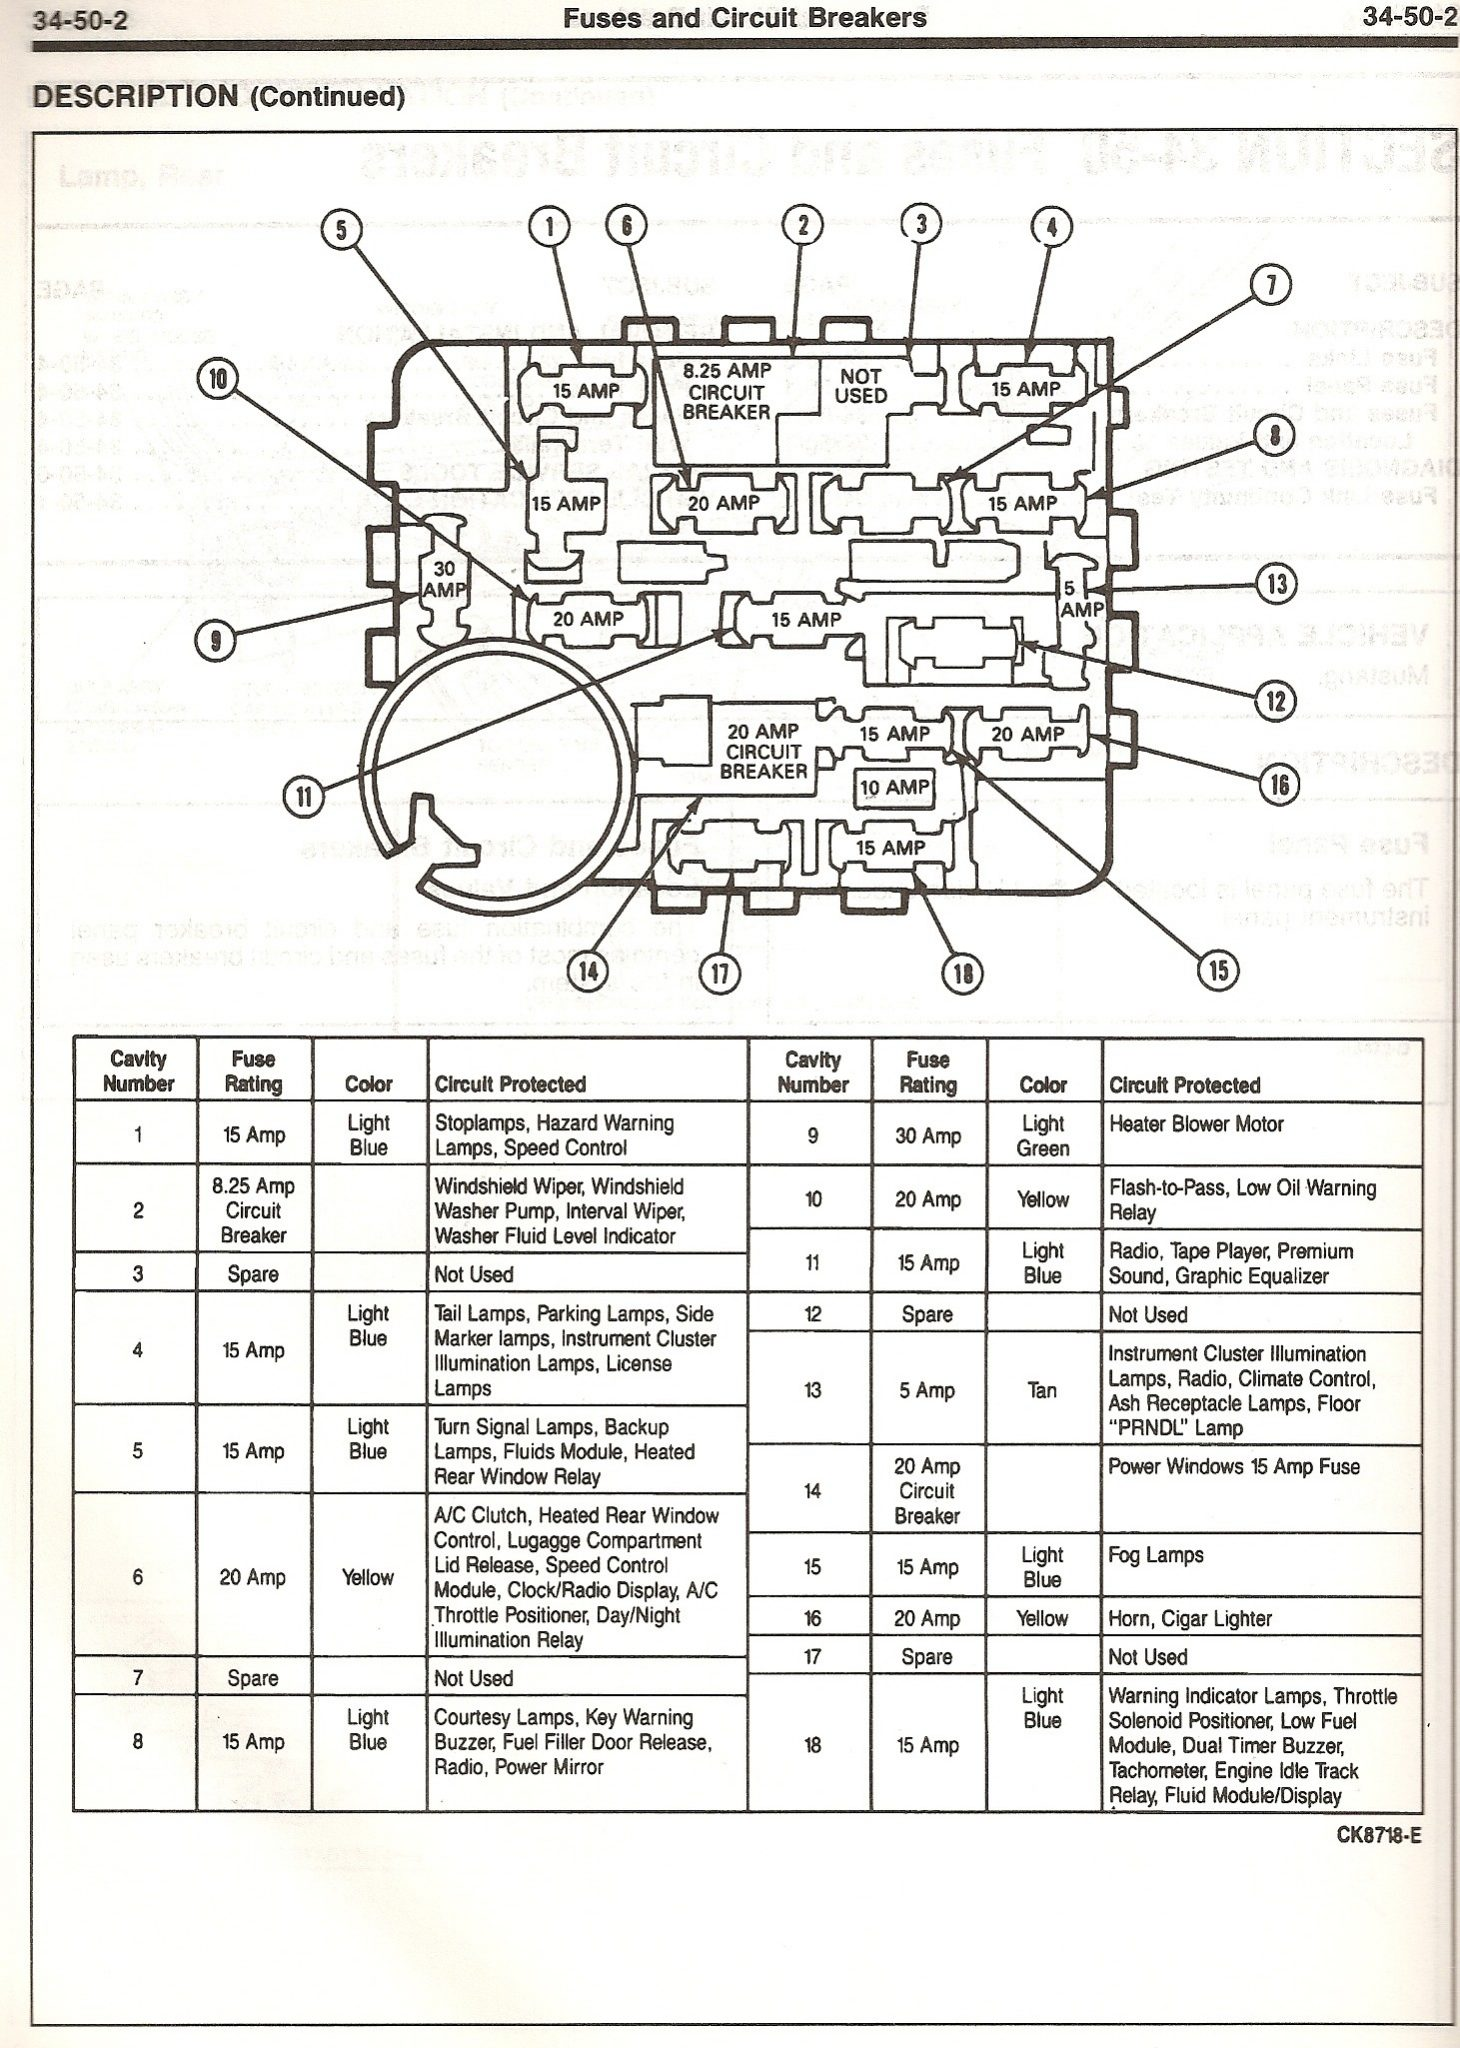 1992 honda accord fuel pump wiring diagram images stereo wiring 4x4 vacuum diagram on 93 mustang ecm wiring get image